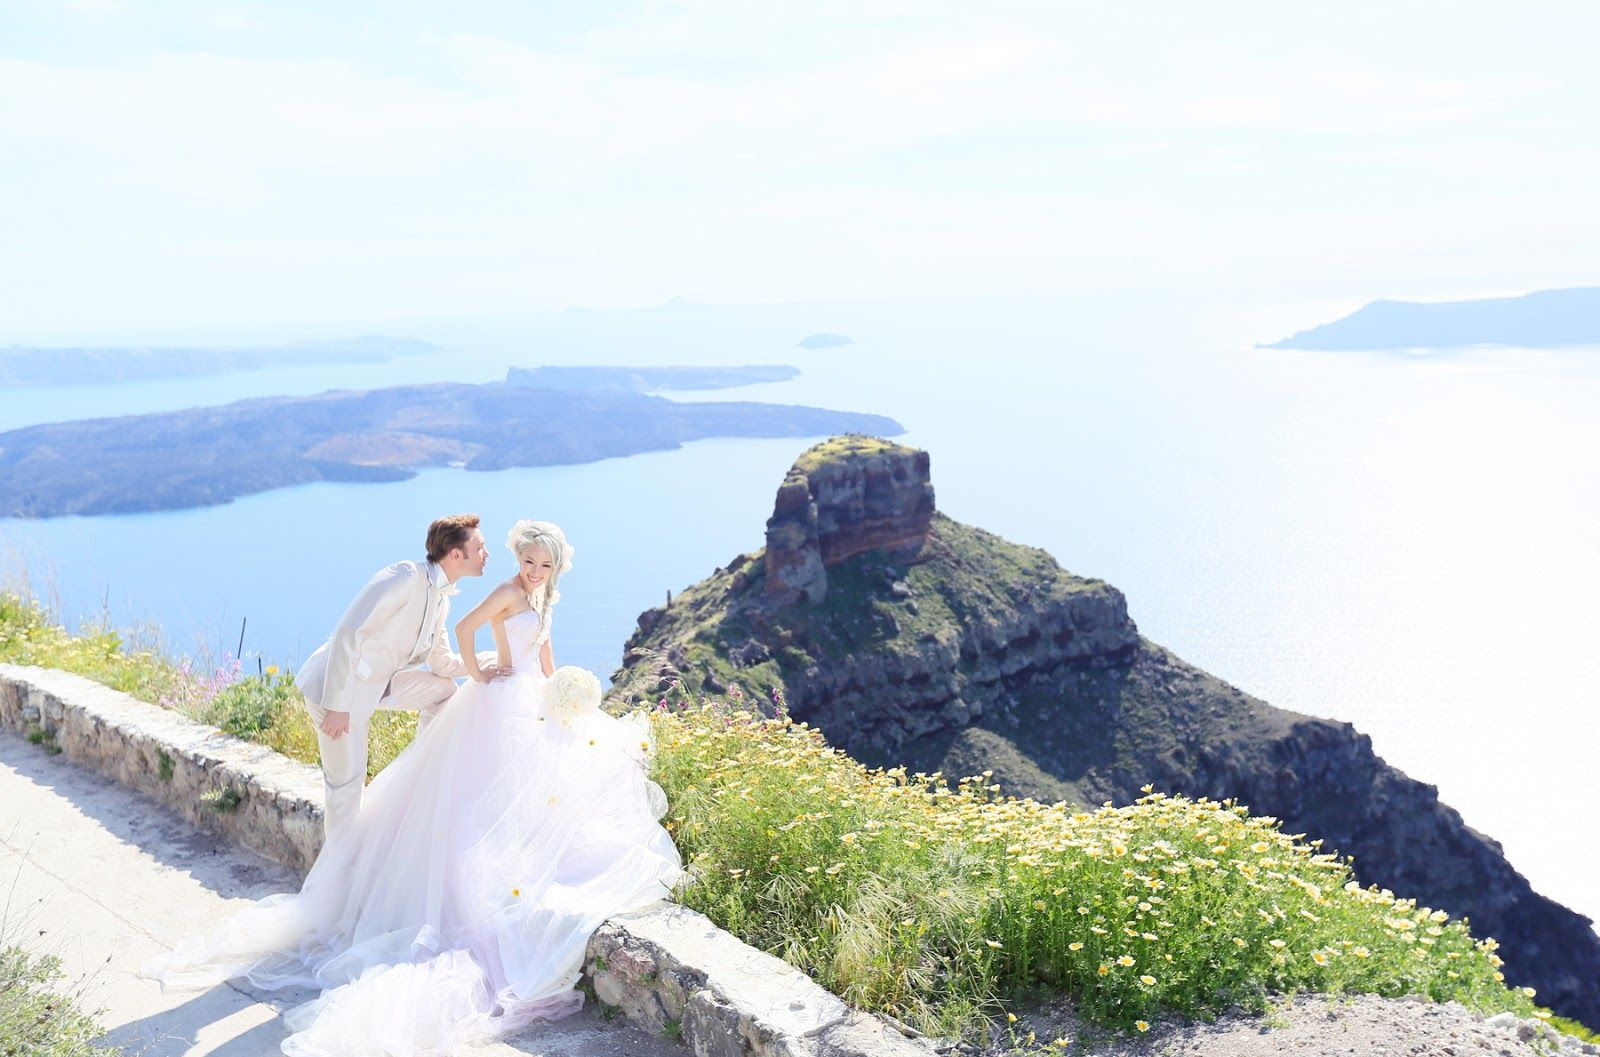 Xiaxue S Amazing Wedding Shoot With Sunrise Greece In Santorini Xiaxue Blogspot Com Wedding Photoshoot Greece Wedding Wedding